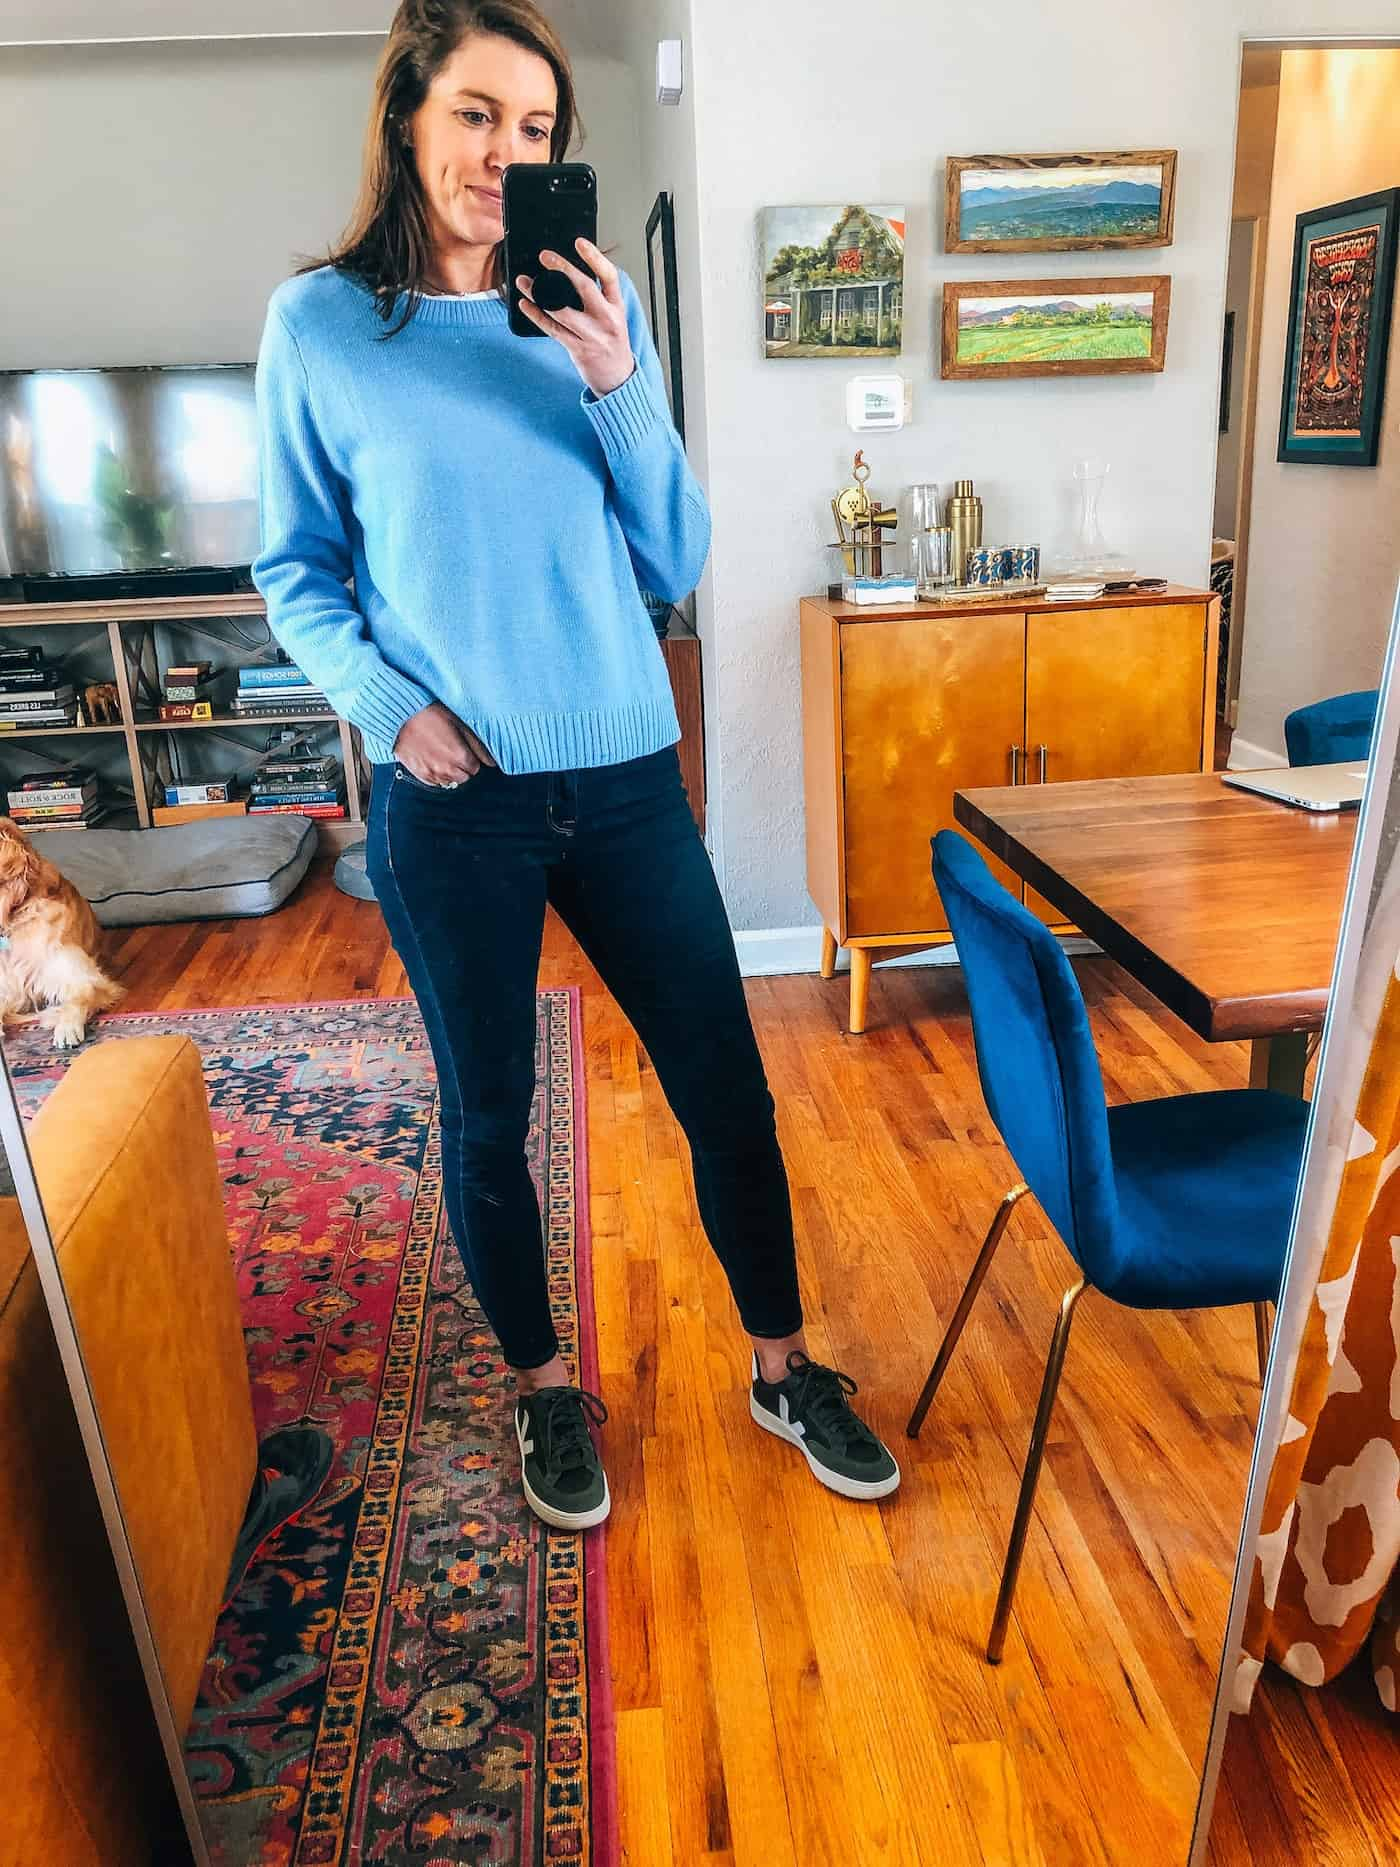 Baby Blue sweater and dark blue jeans